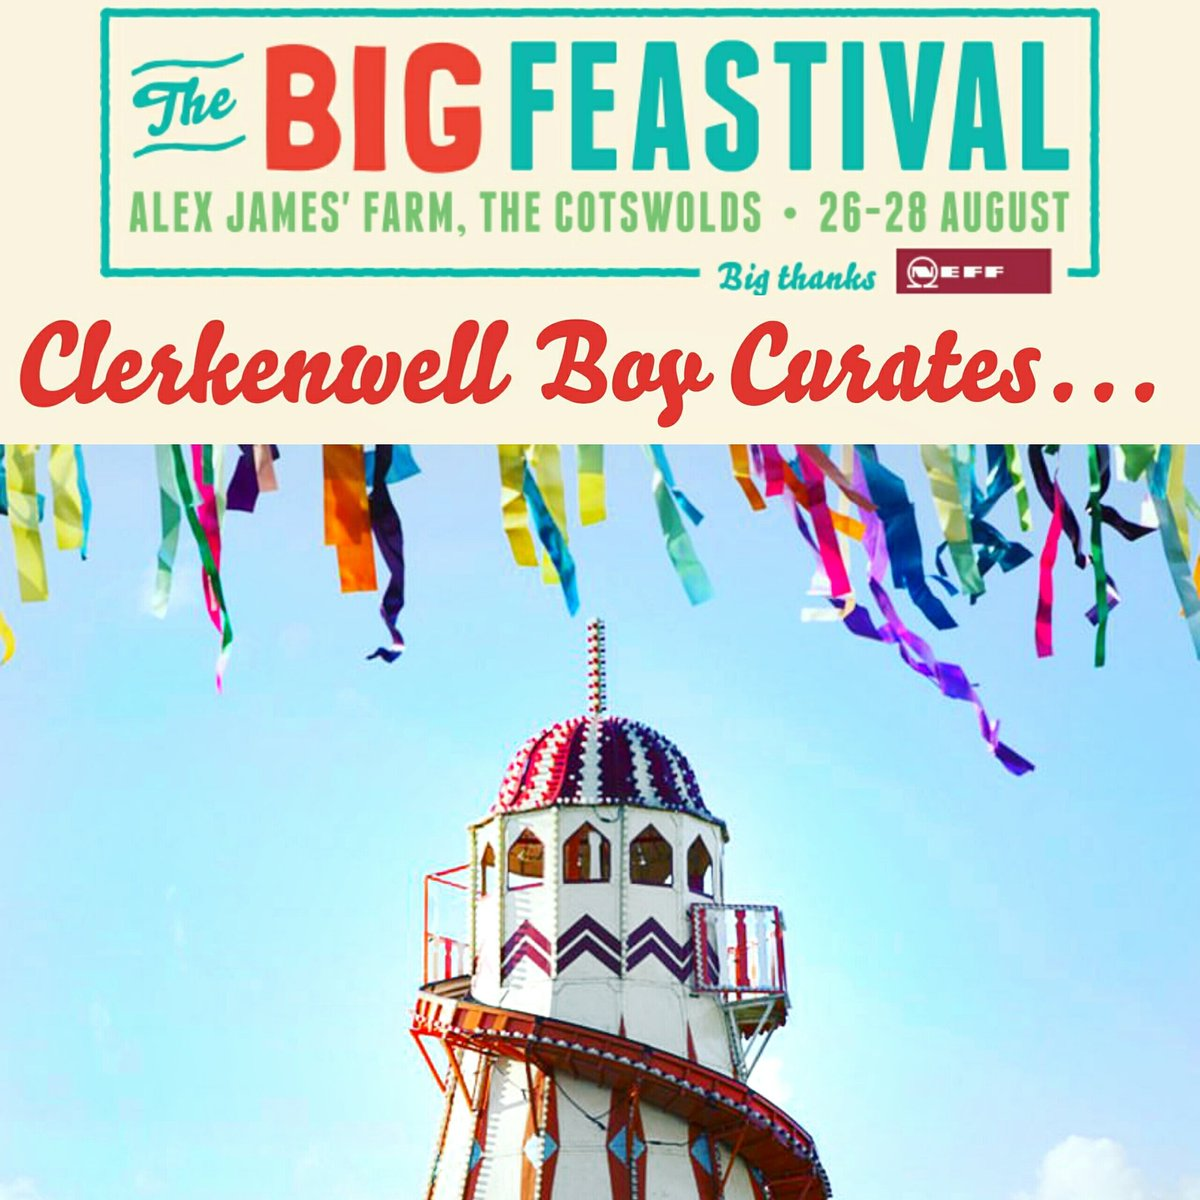 RT @Clerkenwell_Boy: #WIN the ultimate VIP FRIDAY foodie experience @TheBigFeastival ???????????????????????????????????????? See link for info https://t.co/QmydkHxrlH h…